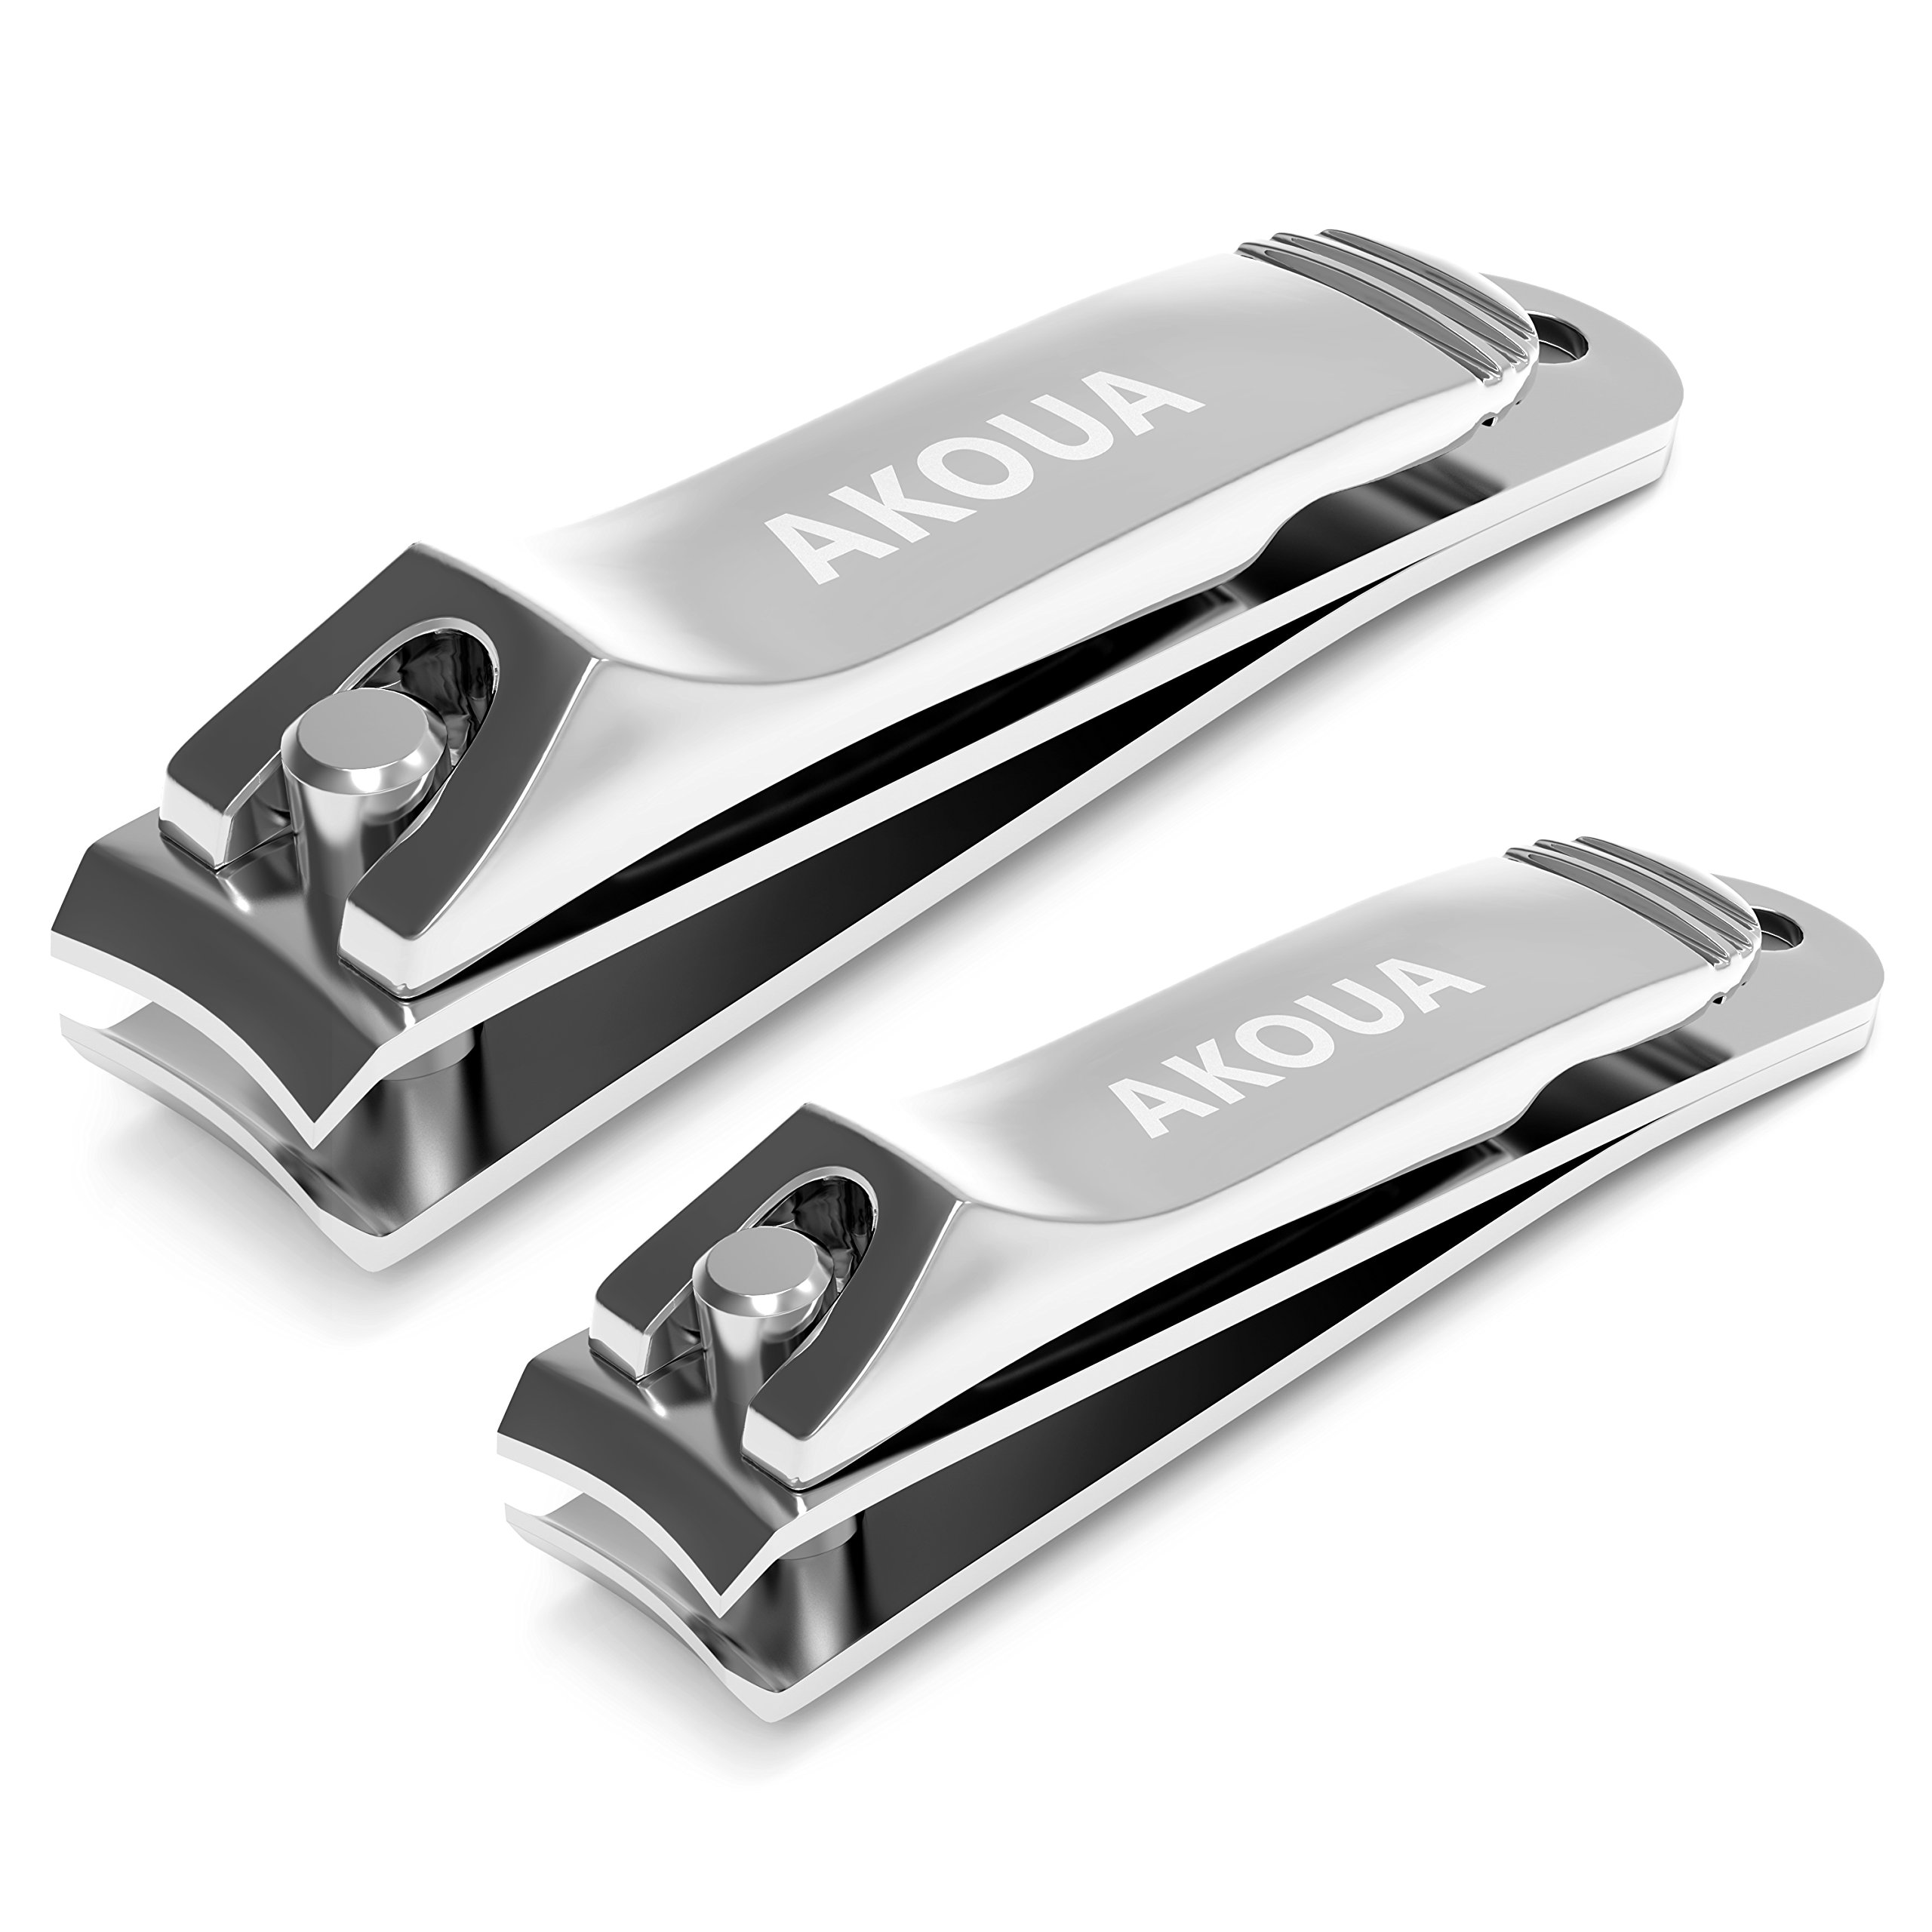 Nail Clipper Set - Ultra Sharp Fingernail & Toenail Clippers with Nail File and Leather Pouch by AKOUA